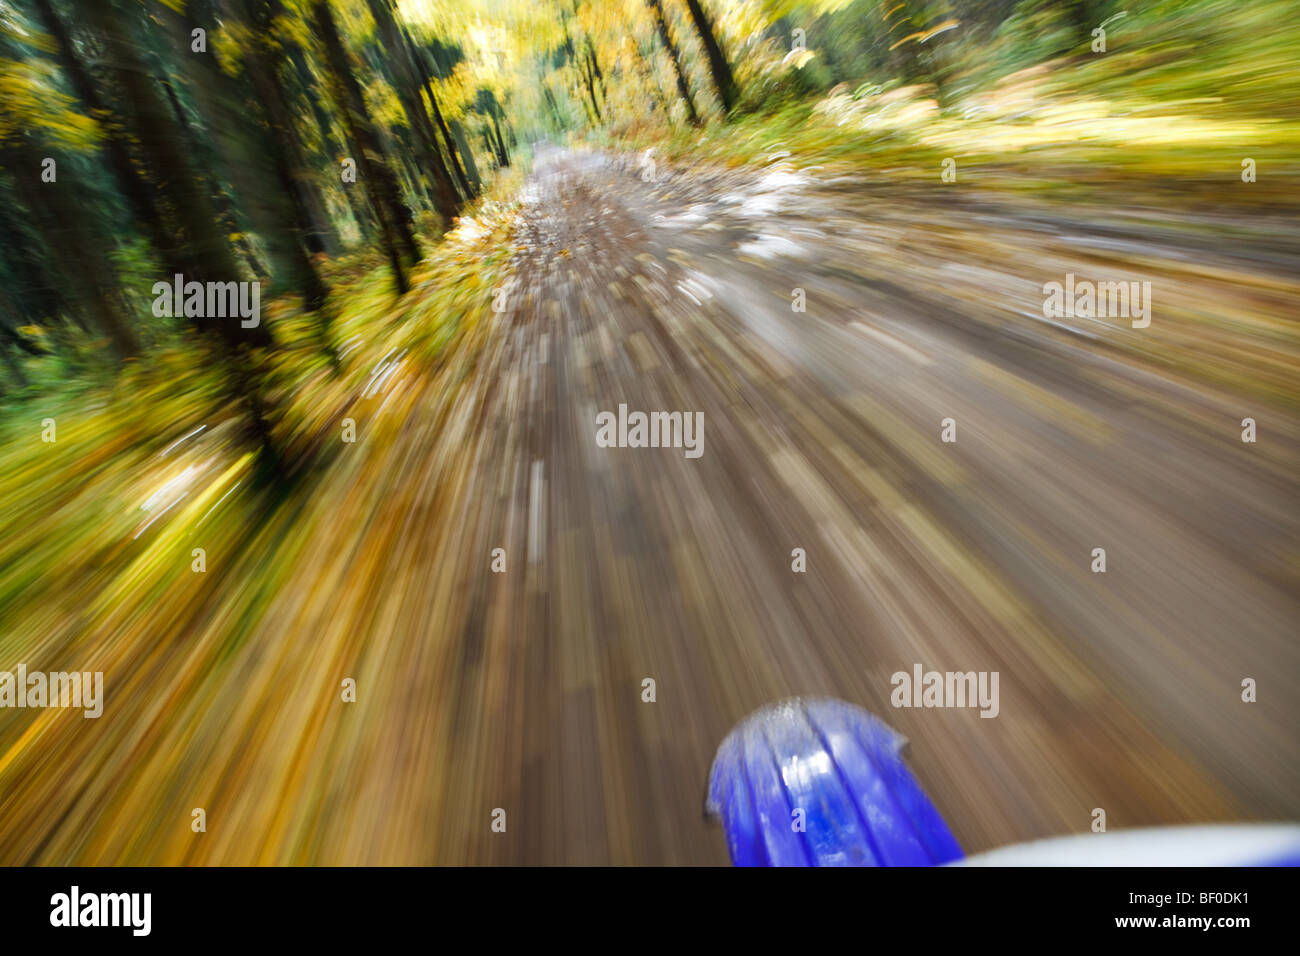 Riding dirtbike on country road in autumn scene, motion blur from drivers point of view - Stock Image